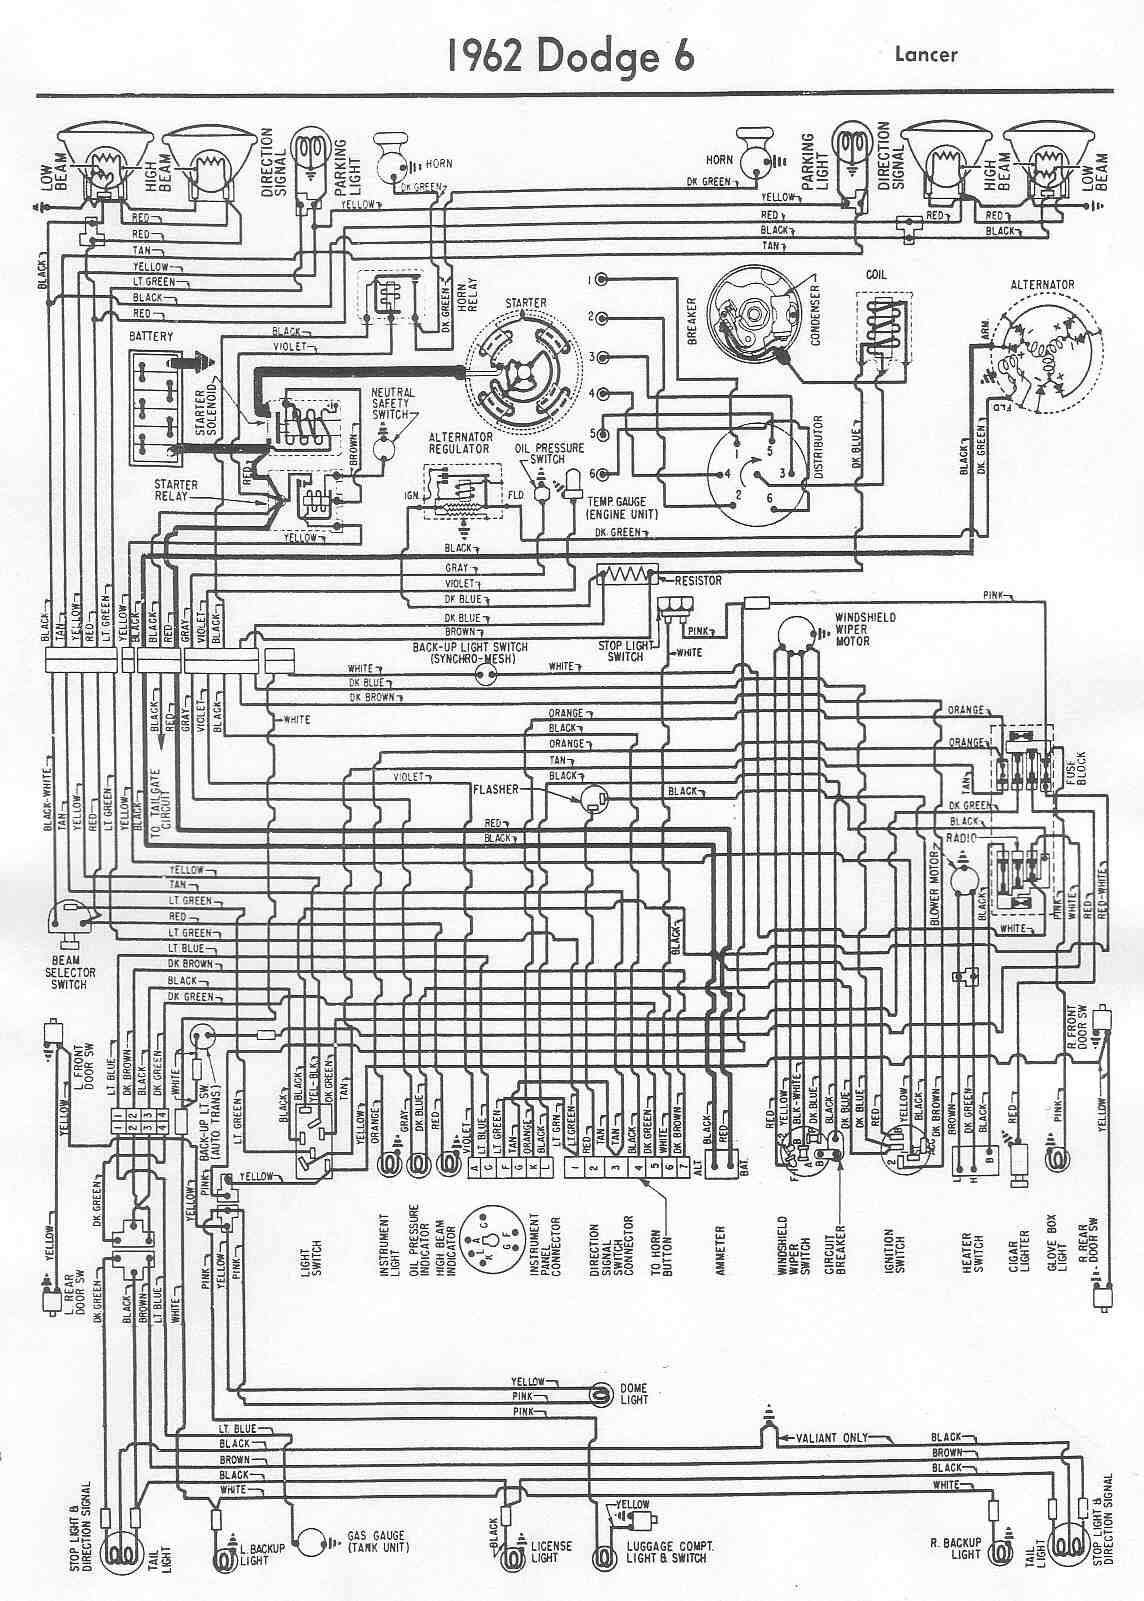 Saab 9 3 Engine Diagram Wiring For You All Harness Dodge Car Manuals Diagrams Pdf Fault Codes 2005 22 Tid